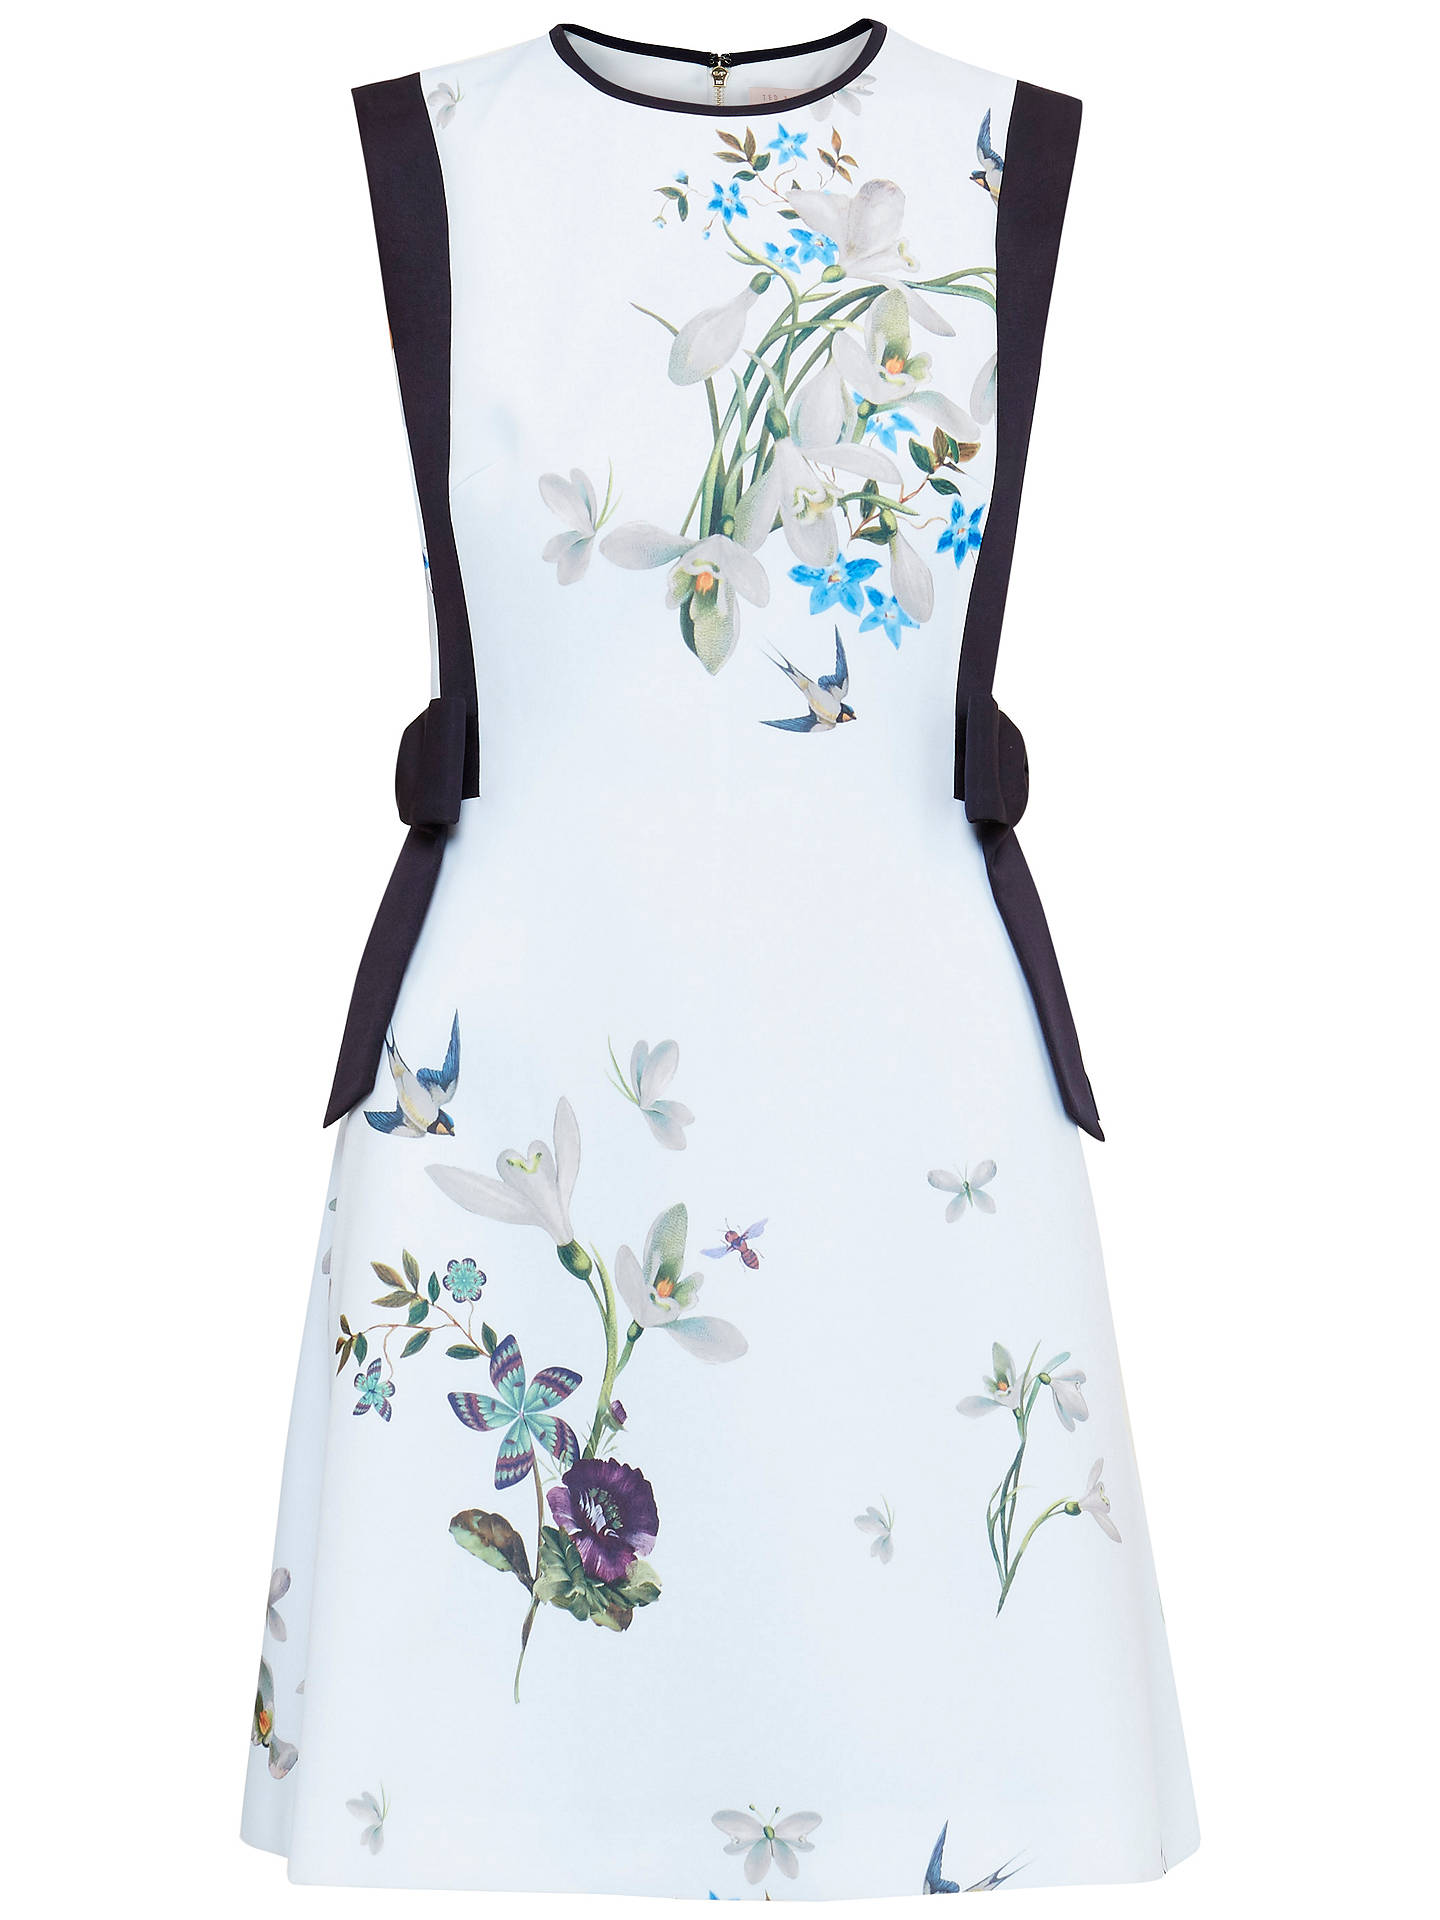 17bca6b44e463 ... Buy Ted Baker Sipnela Spring Meadow A-Line Bow Dress